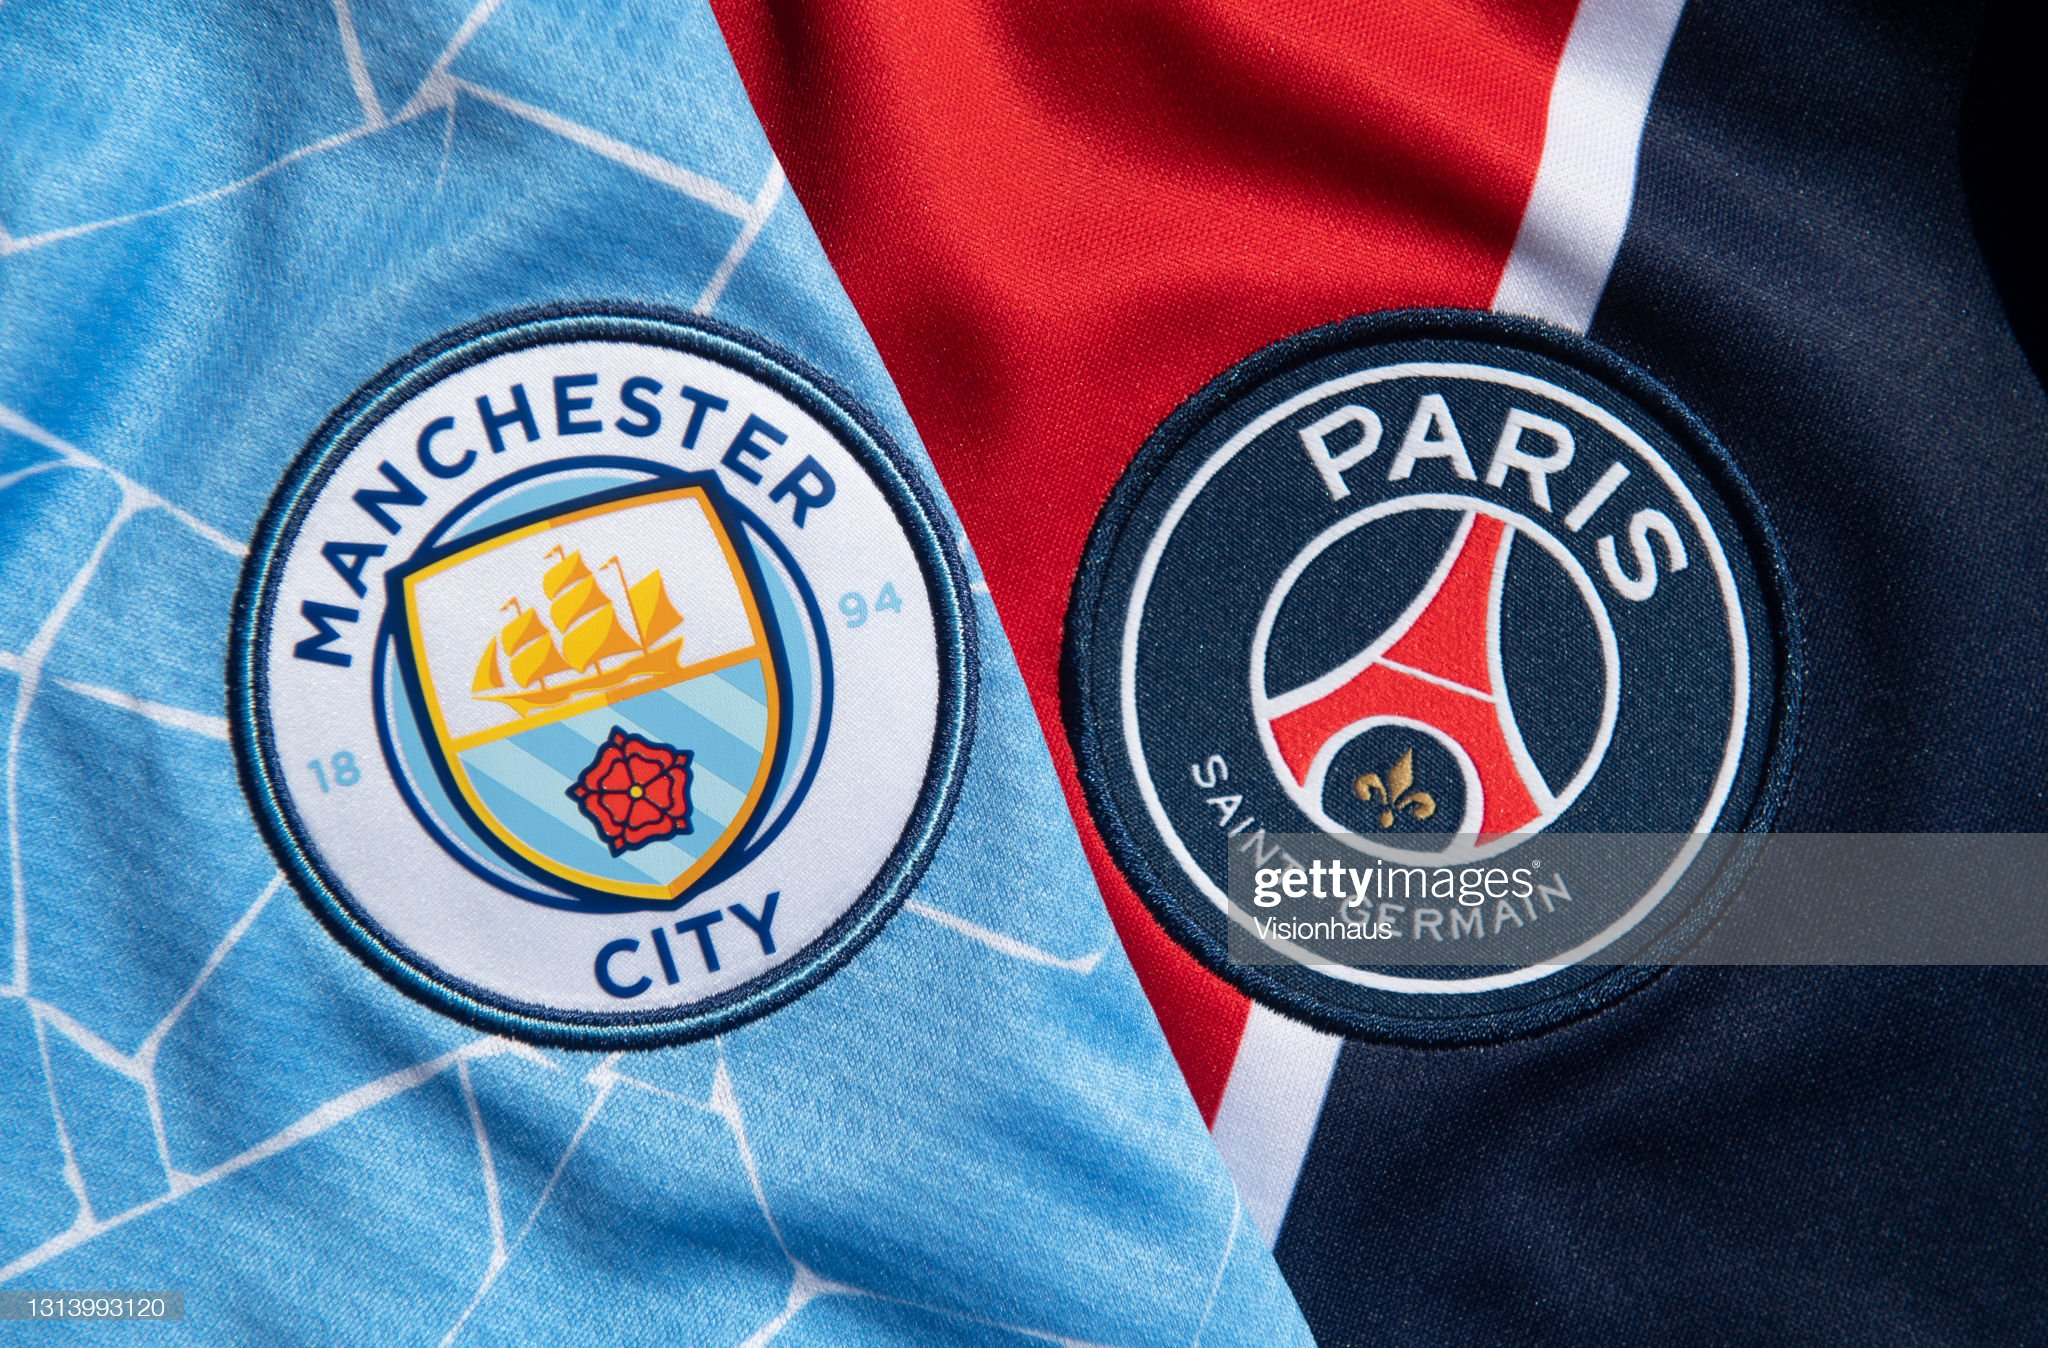 PSG vs Manchester City preview, prediction and odds